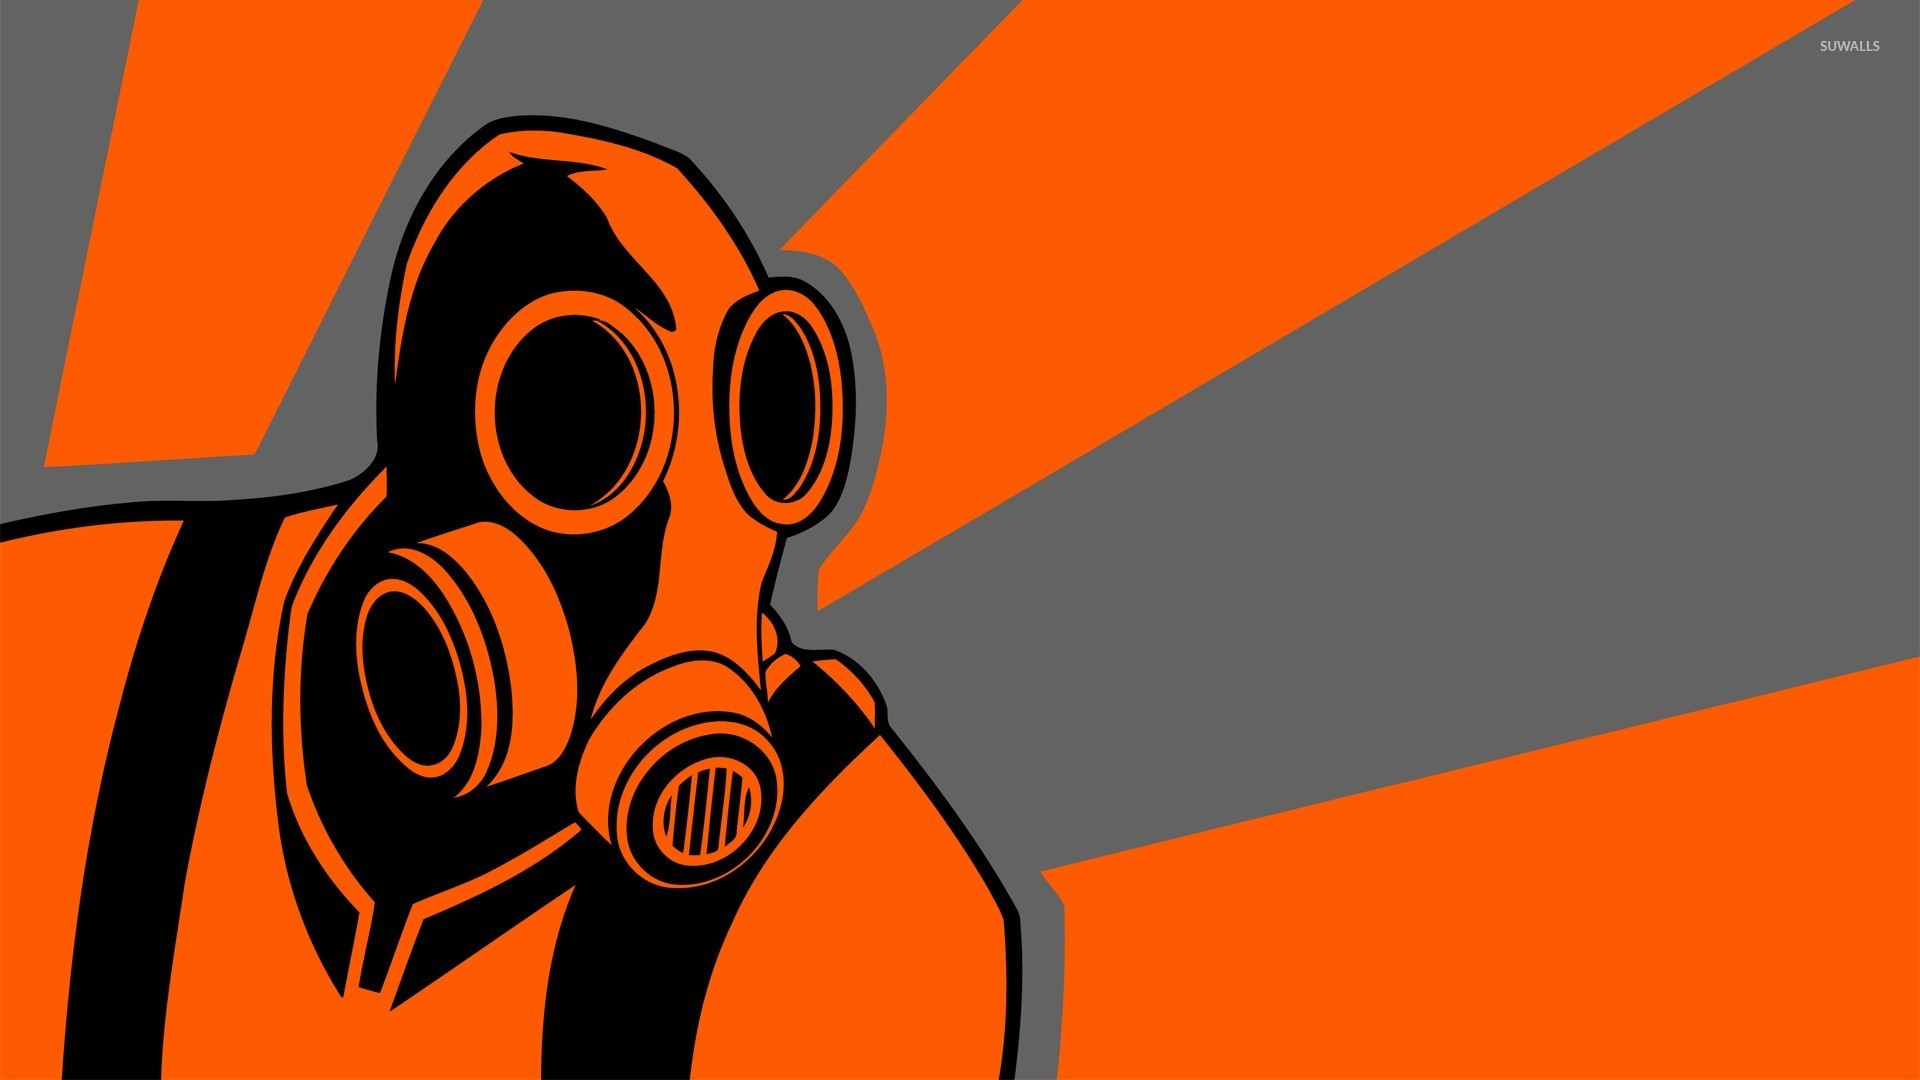 Fortress clipart background Pyro 800×500 Pyro background Team